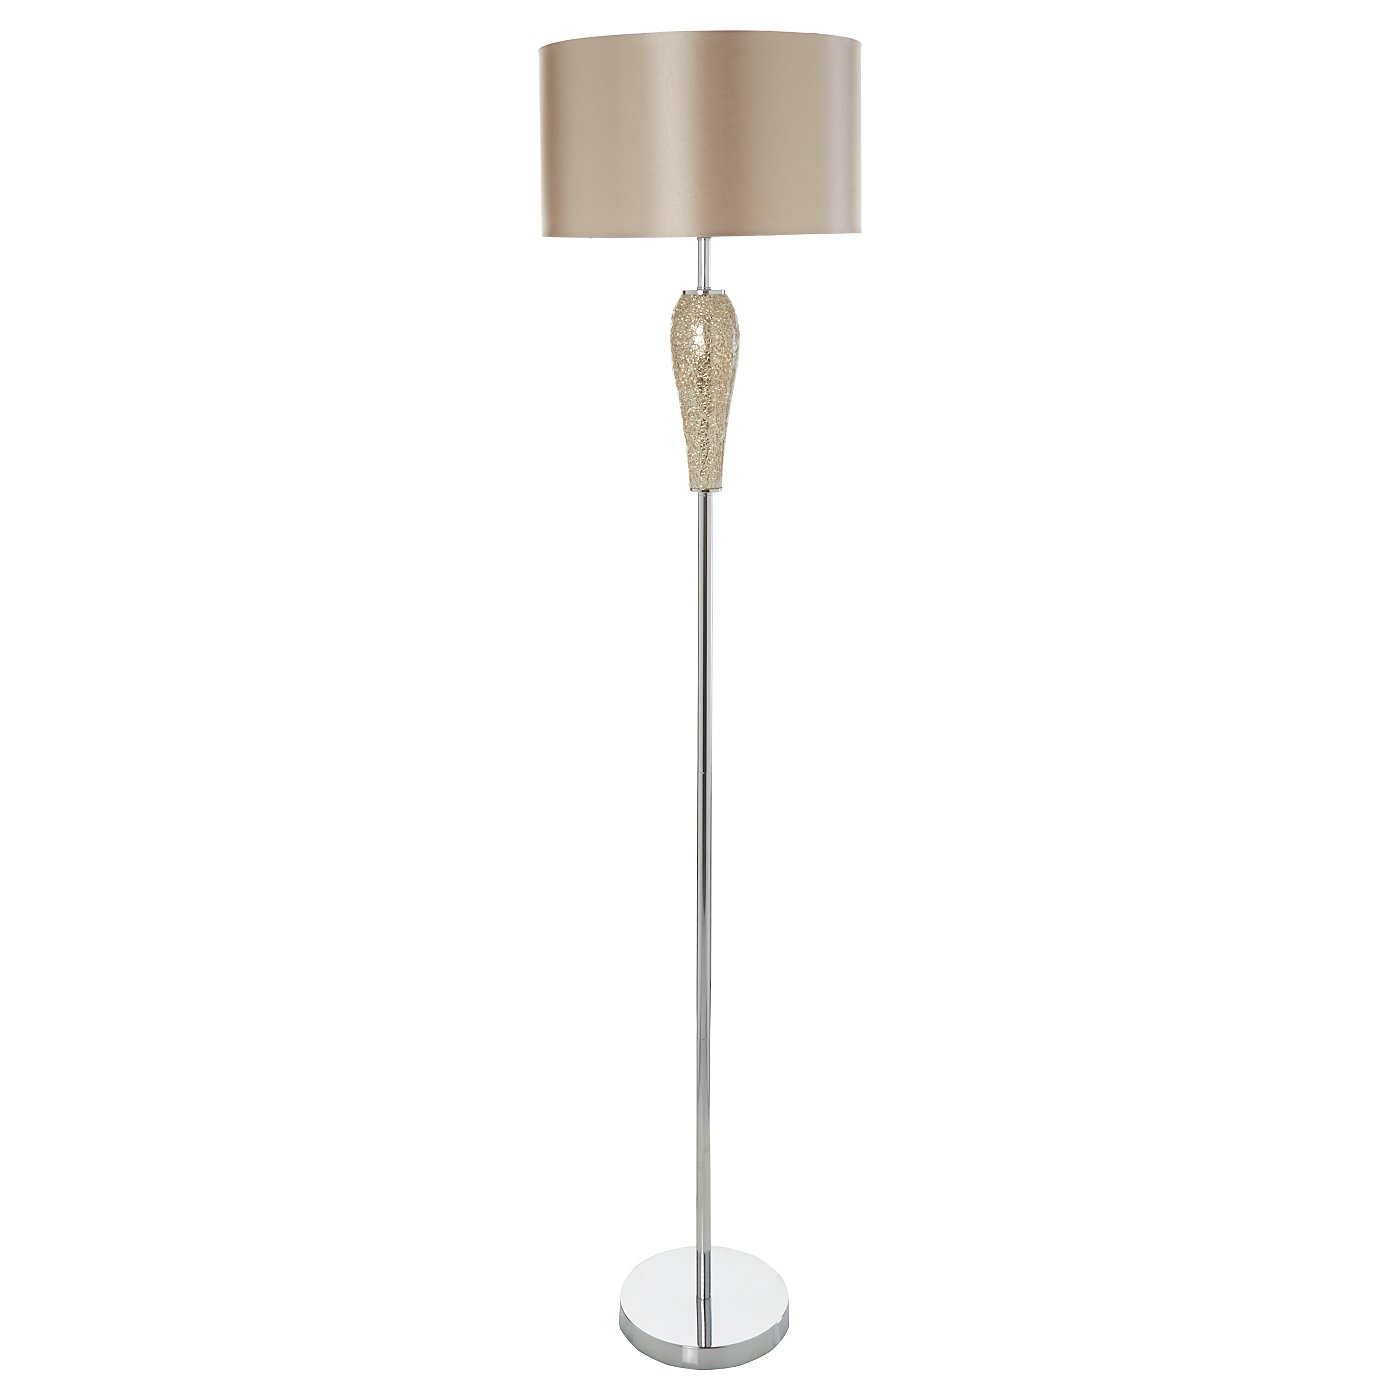 Gold mosaic lamp range table floor lamps george at asda gold mosaic lamp range loading zoom mozeypictures Choice Image